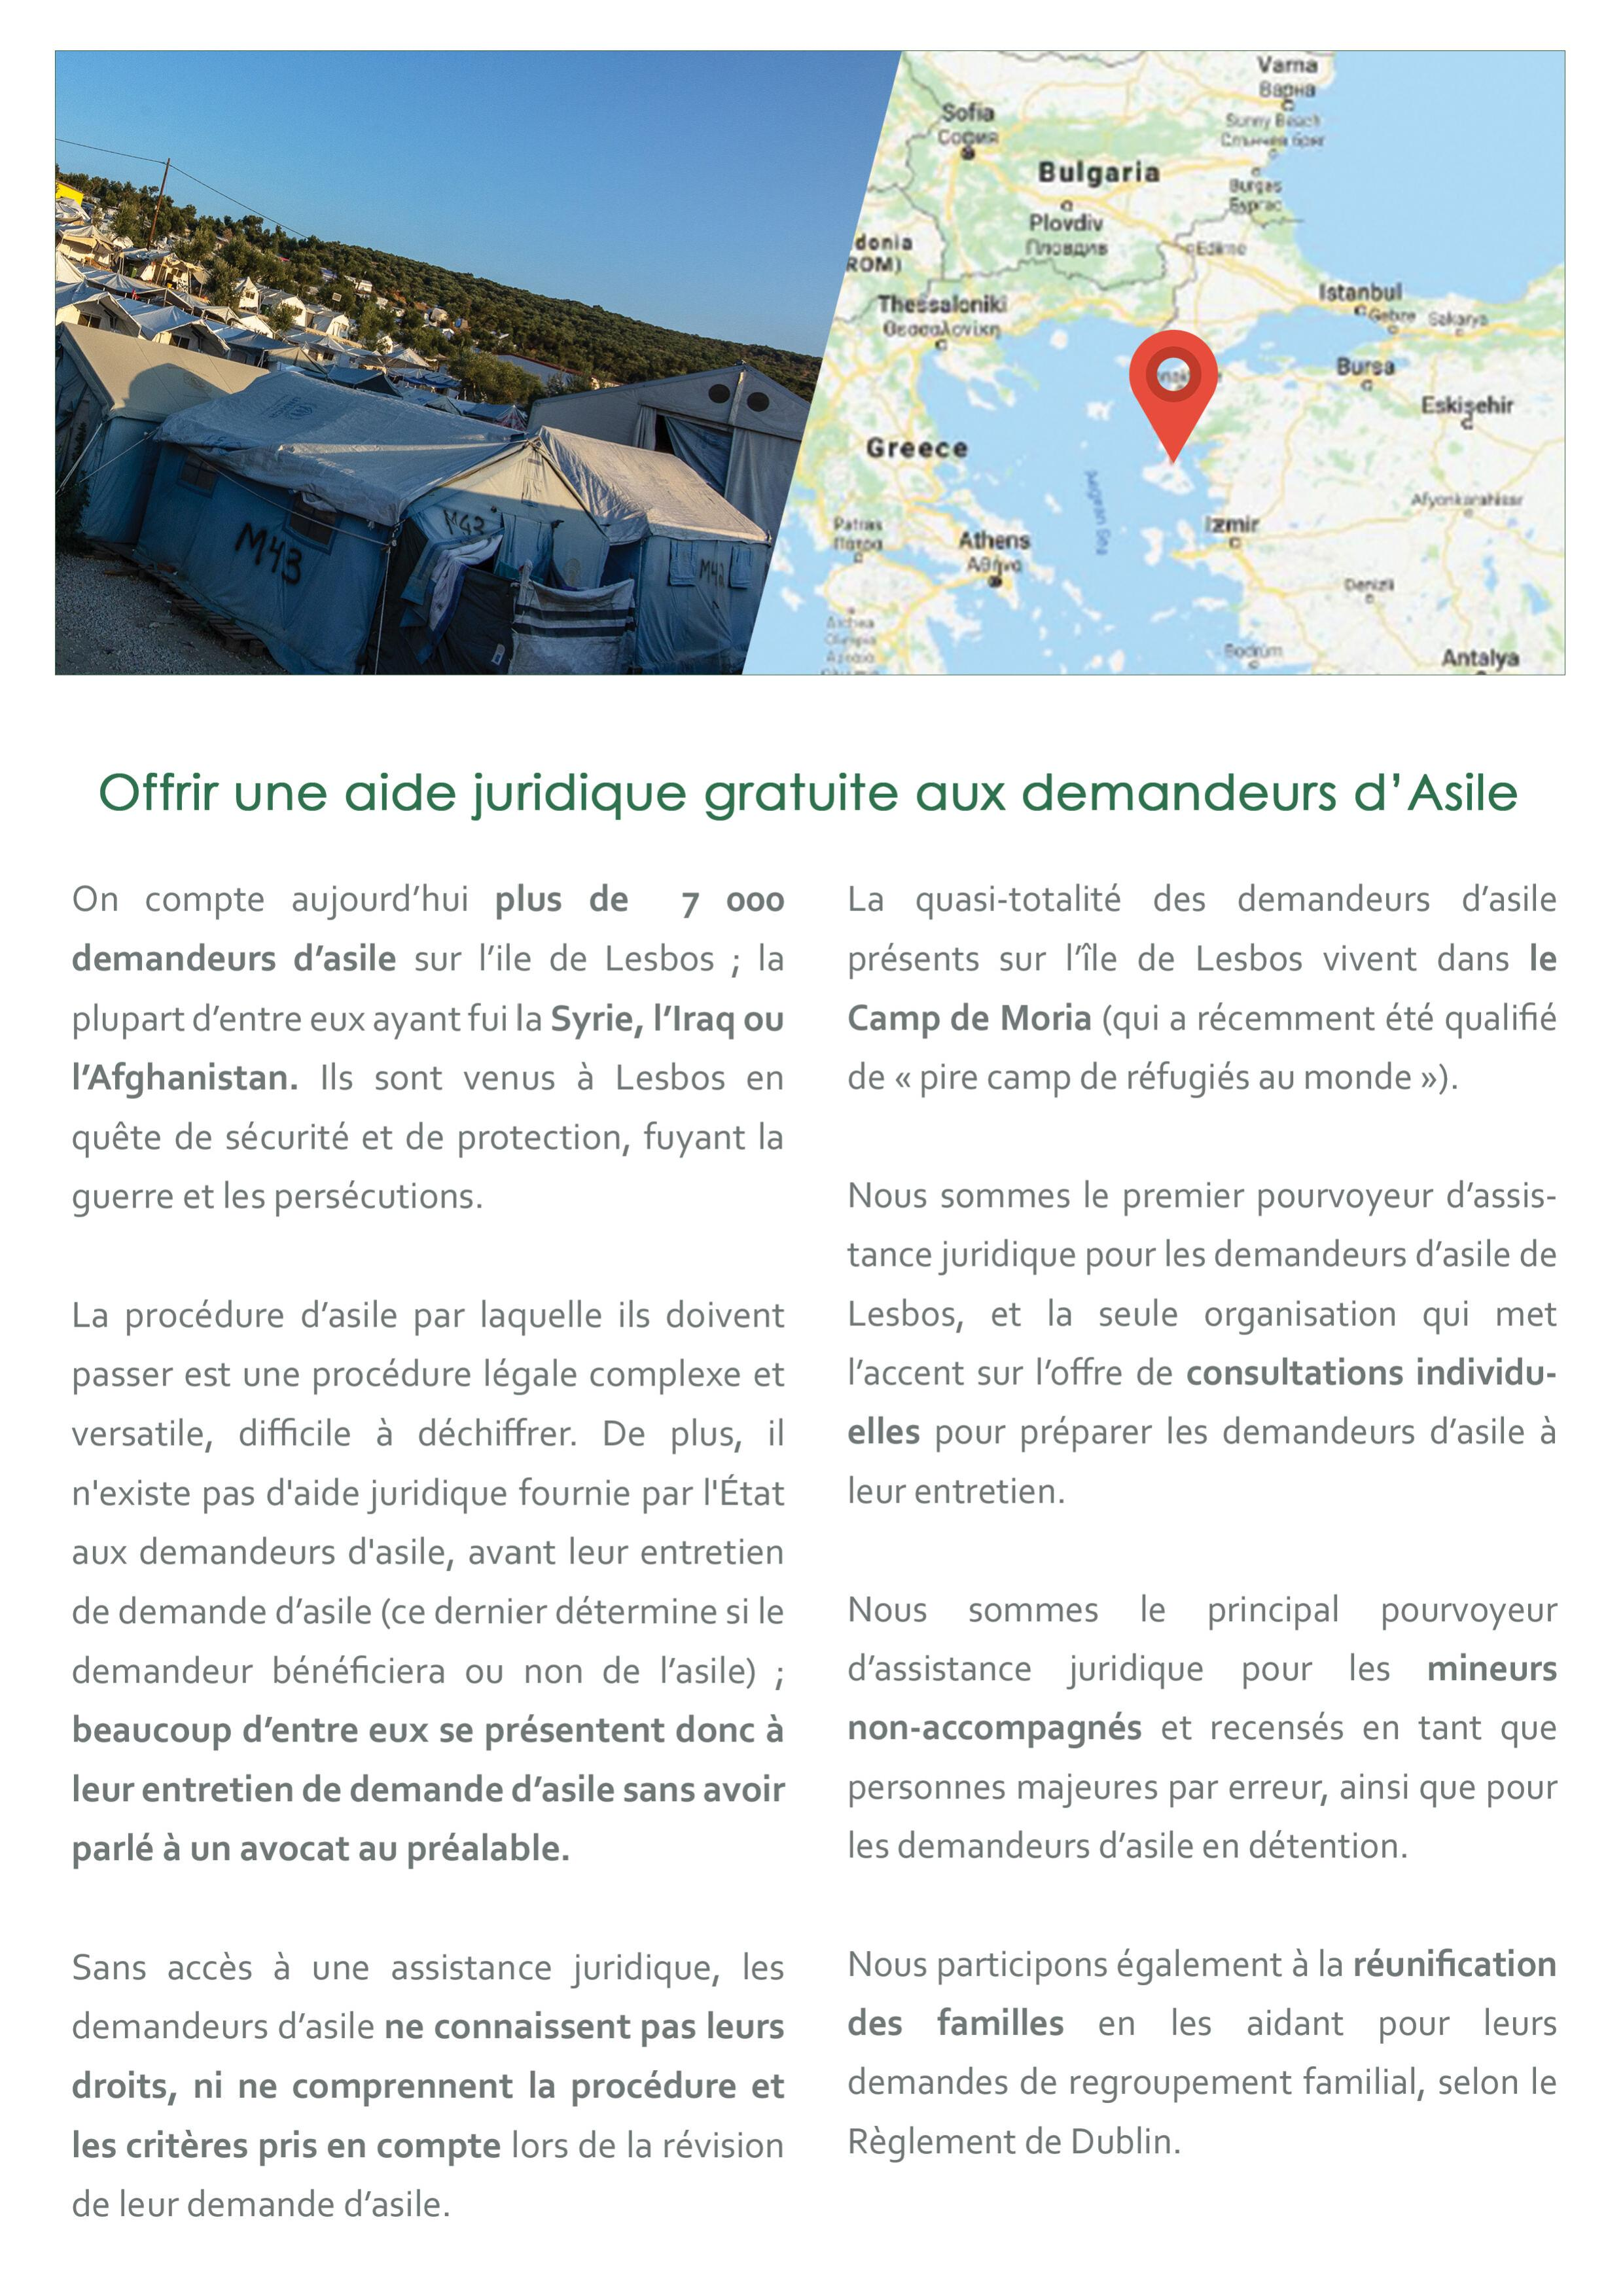 European Lawyers in Lesvos - Infographic_FR-page-002.jpg